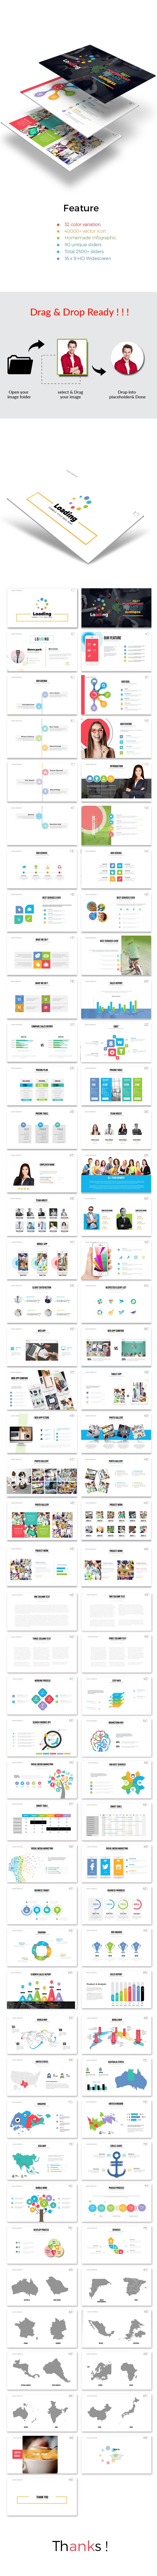 36 best powerpoint images on pinterest presentation design loading powerpoint template powerpoint templates presentation templates toneelgroepblik Images